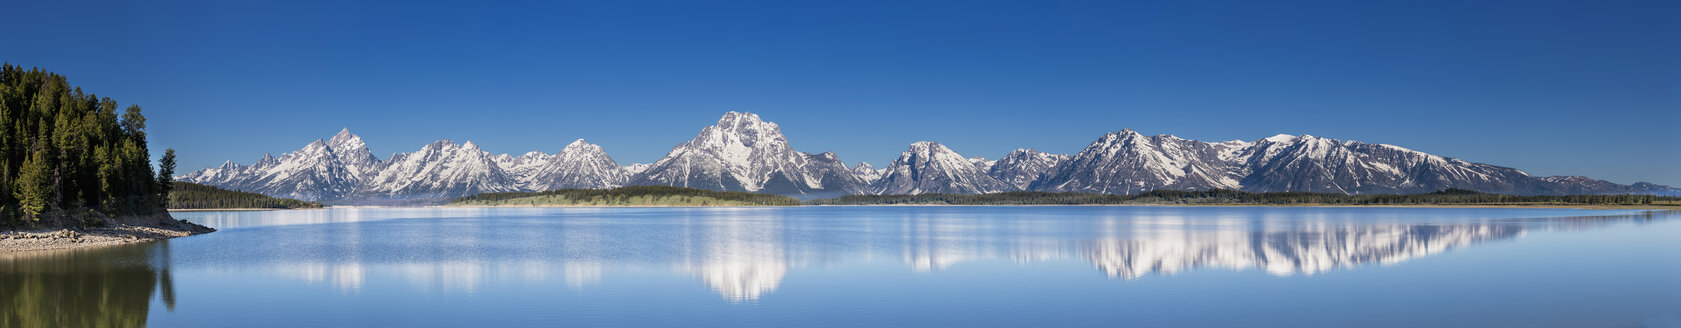 USA, Wyoming, Grand Teton National Park, Jackson Lake with Teton Range, Mount Moran, Panorama - FOF008085